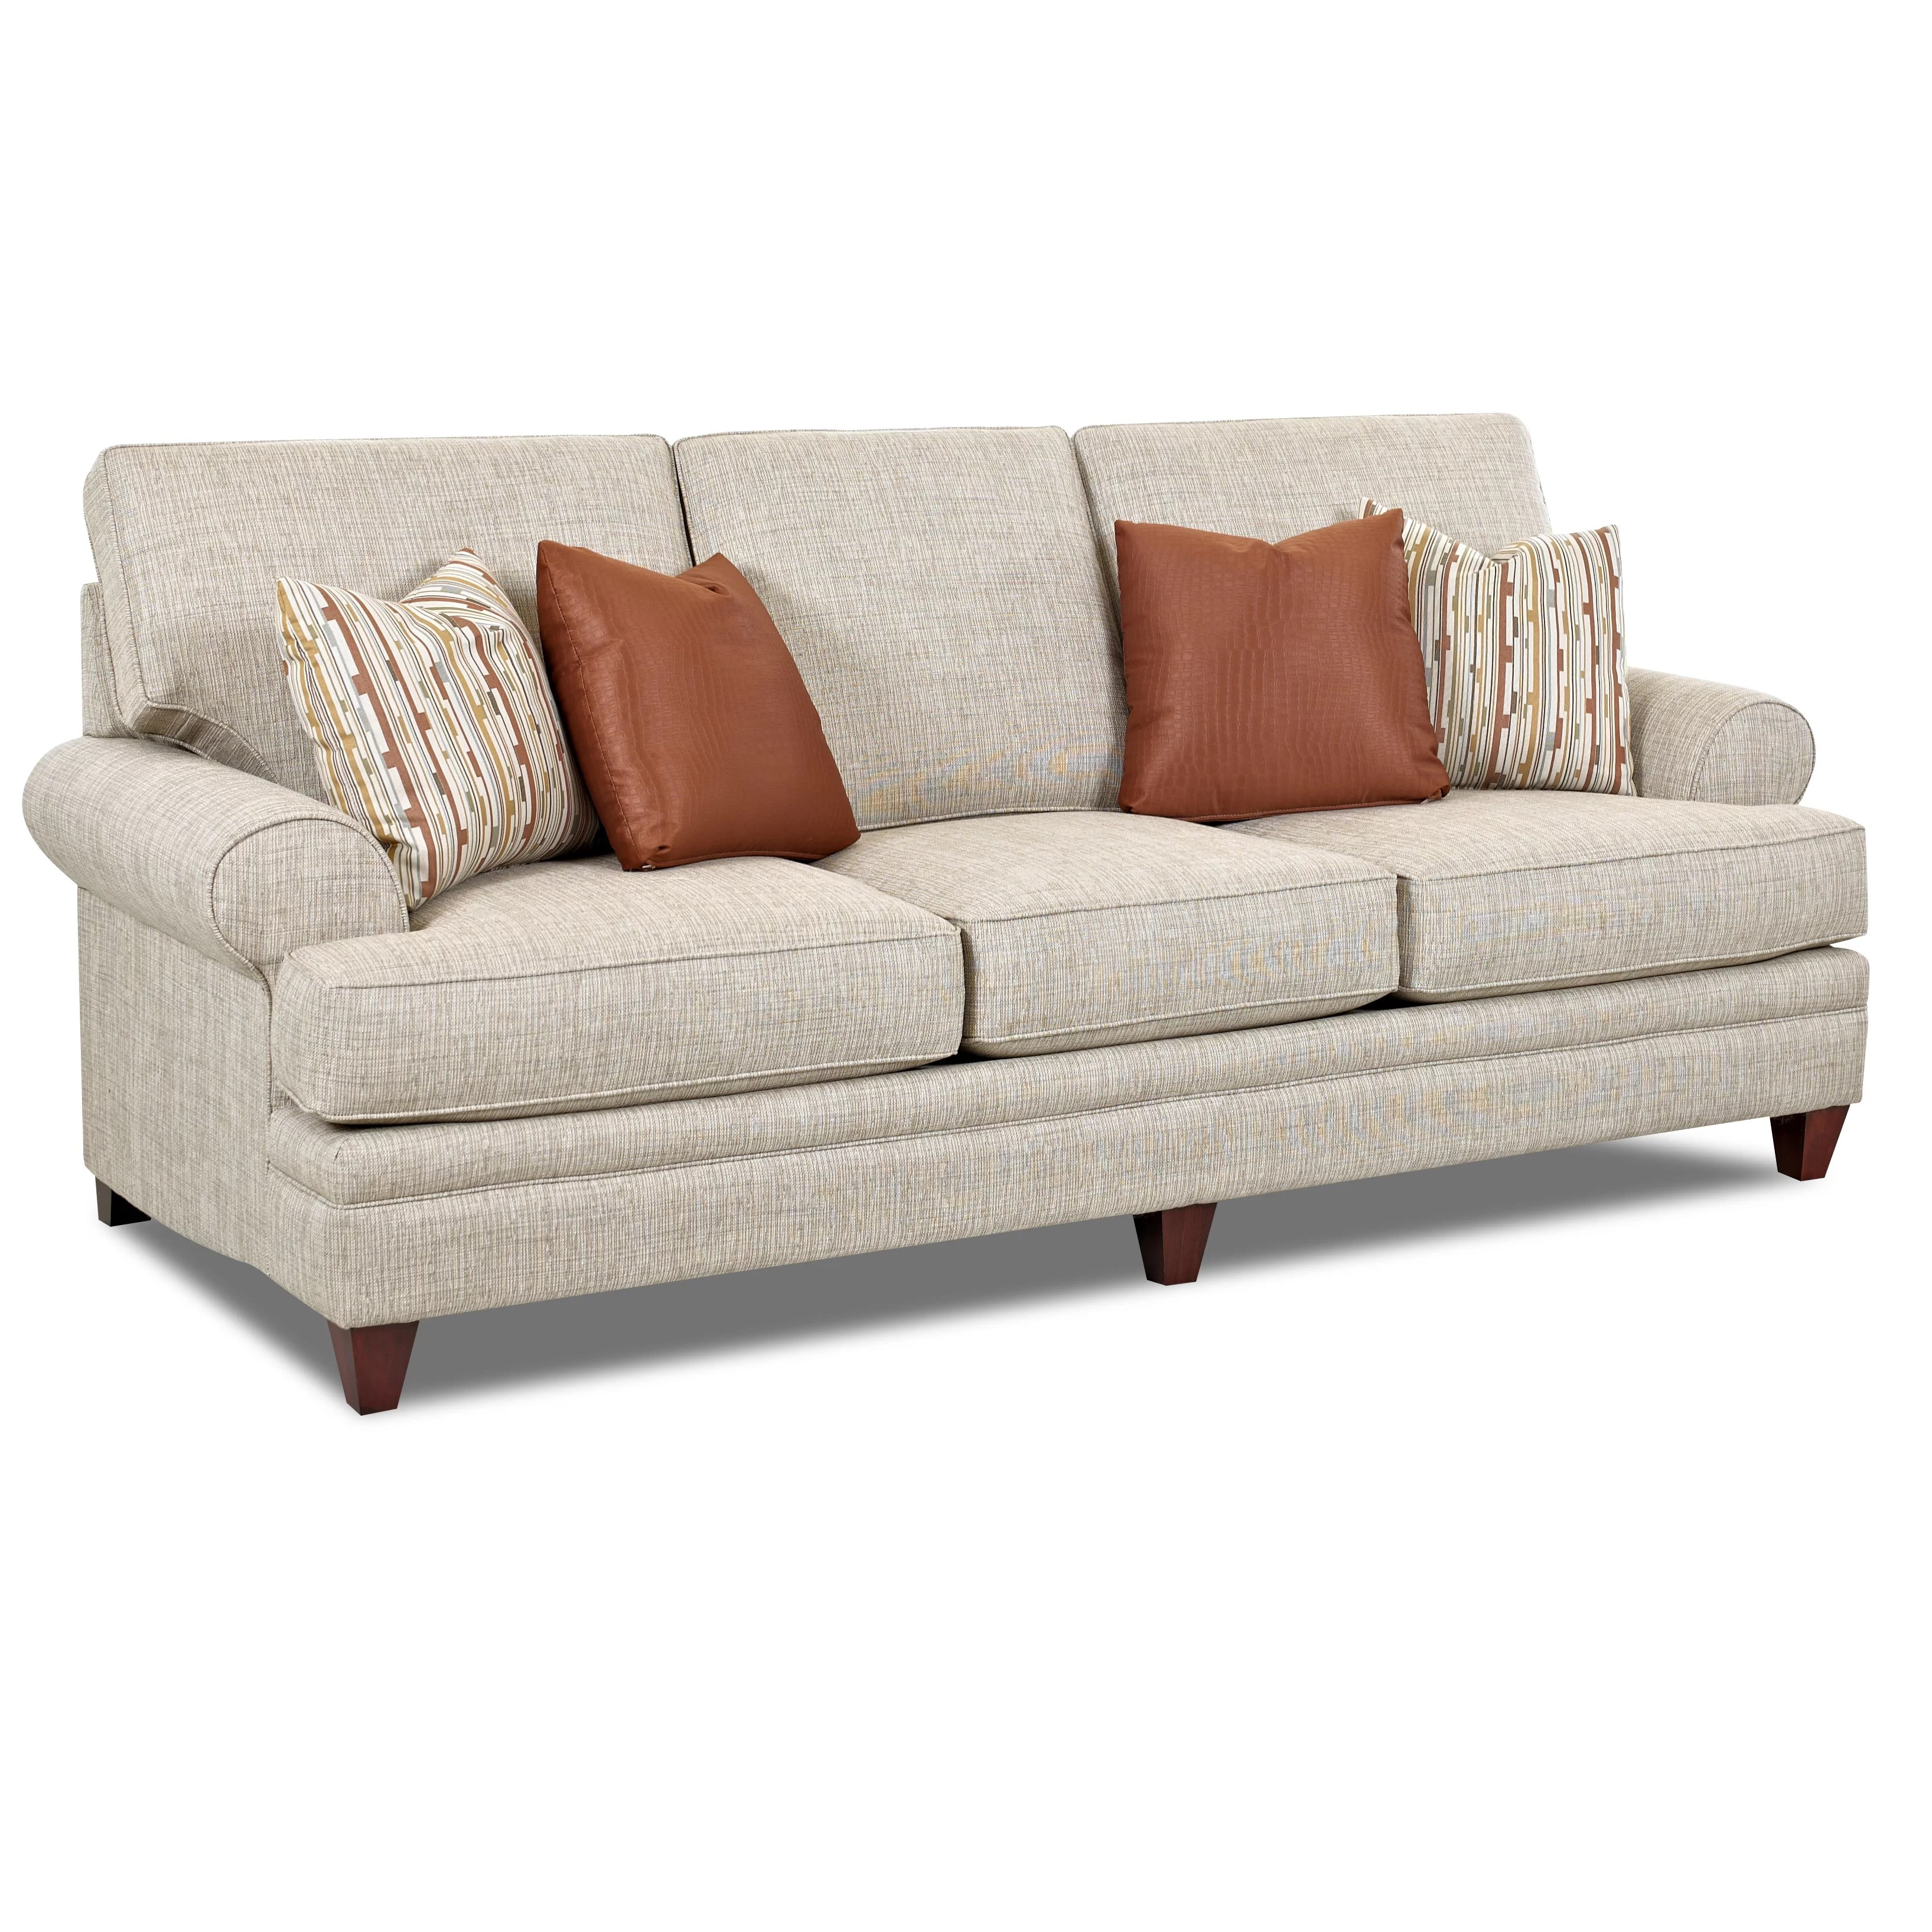 clayton sofa best sofas for dog owners klaussner furniture wayfair